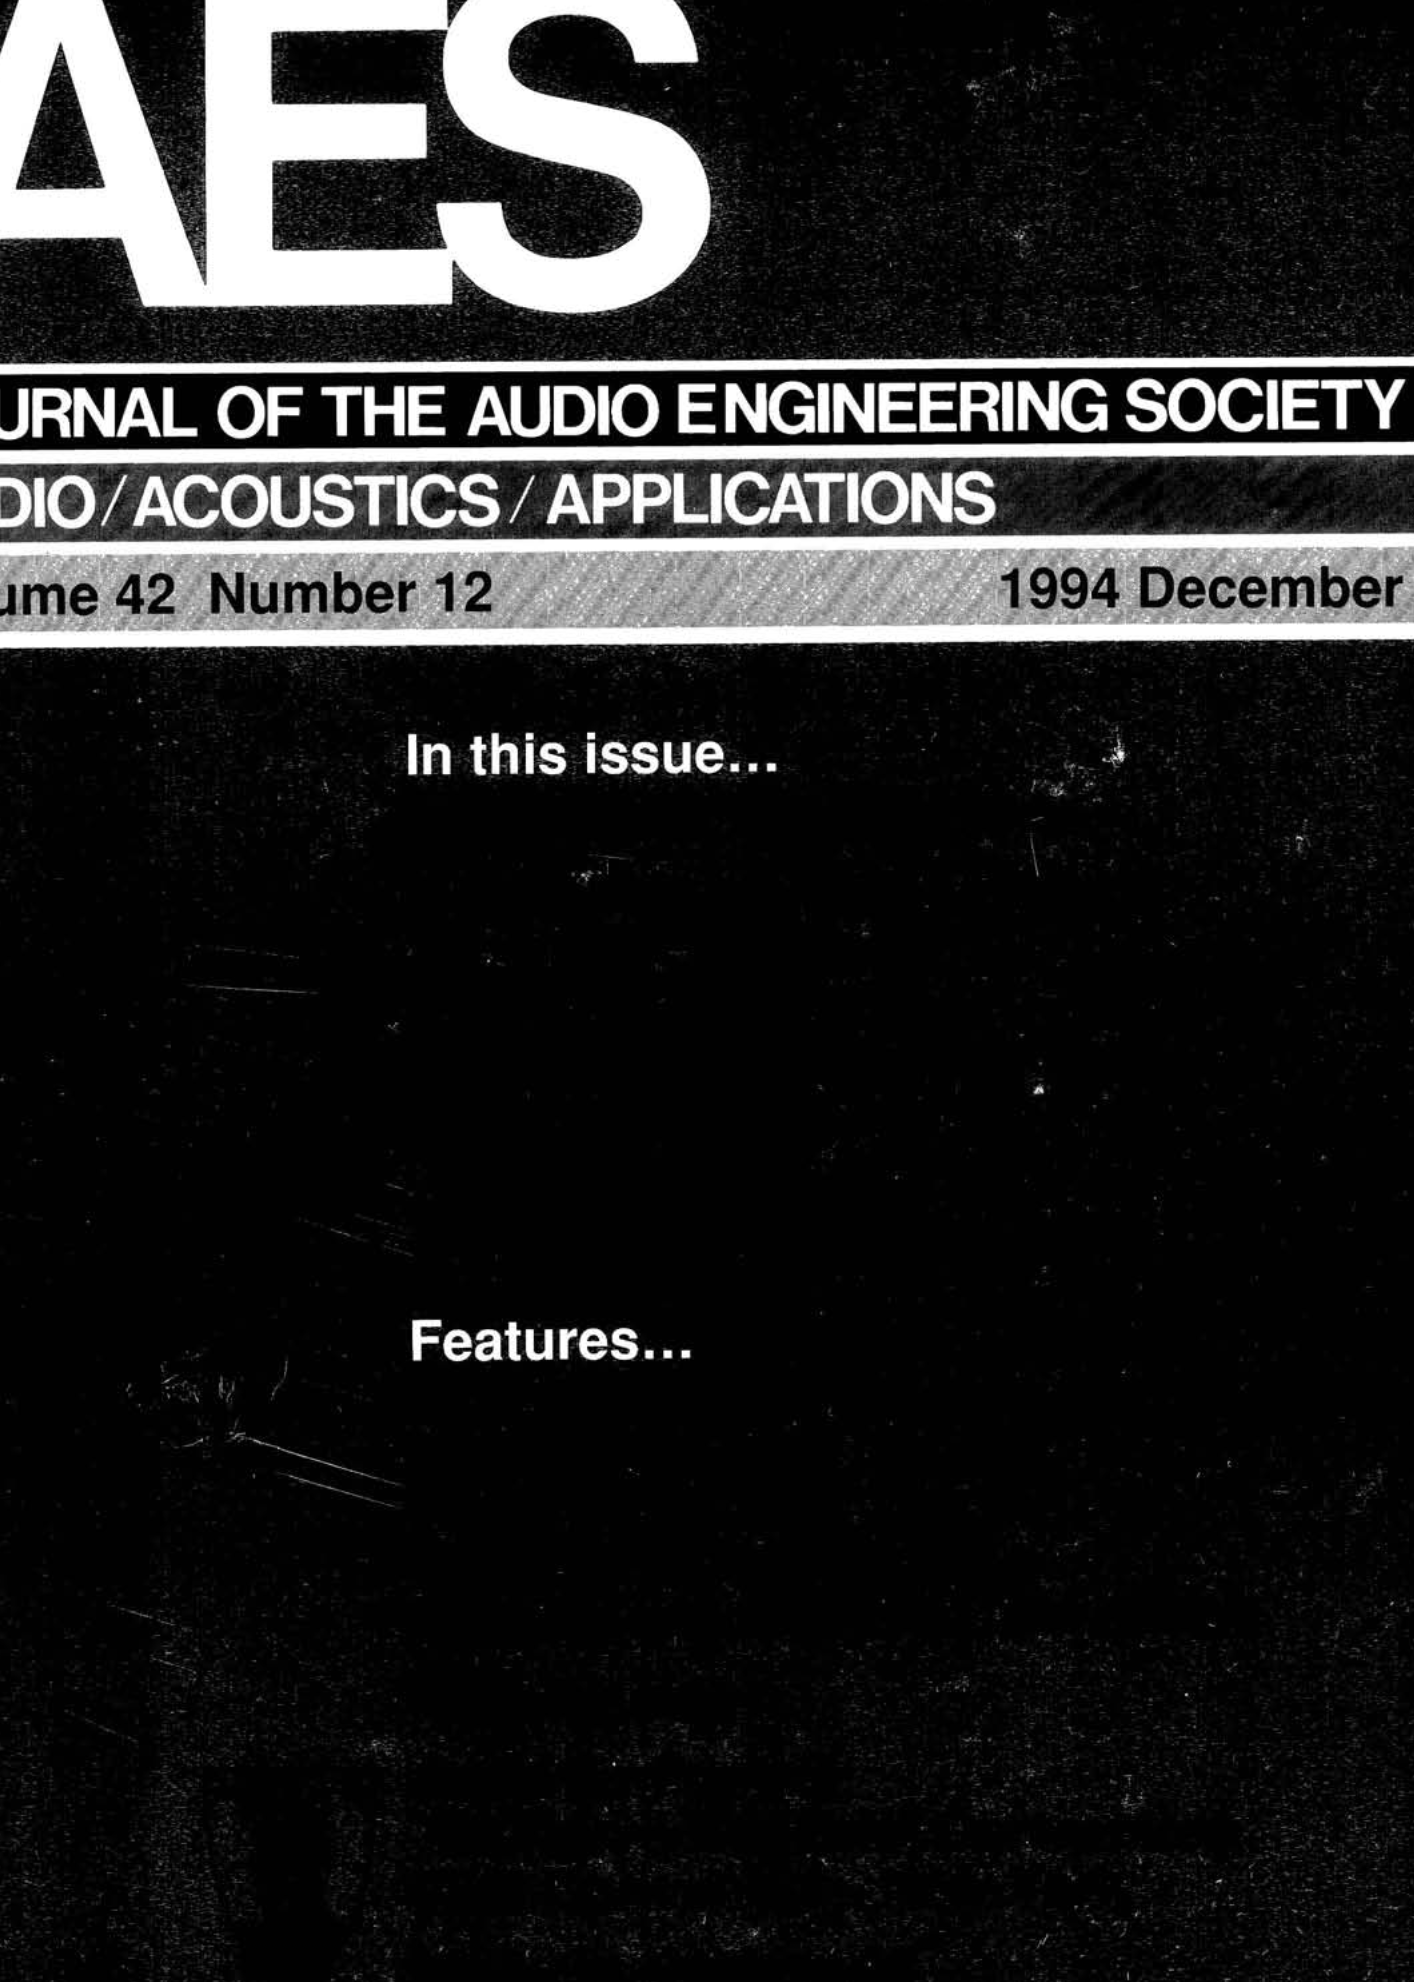 Aes E Library Complete Journal Volume 42 Issue 12 Wiring Diagram Additionally On Kellogg Air Compressor Diagrams